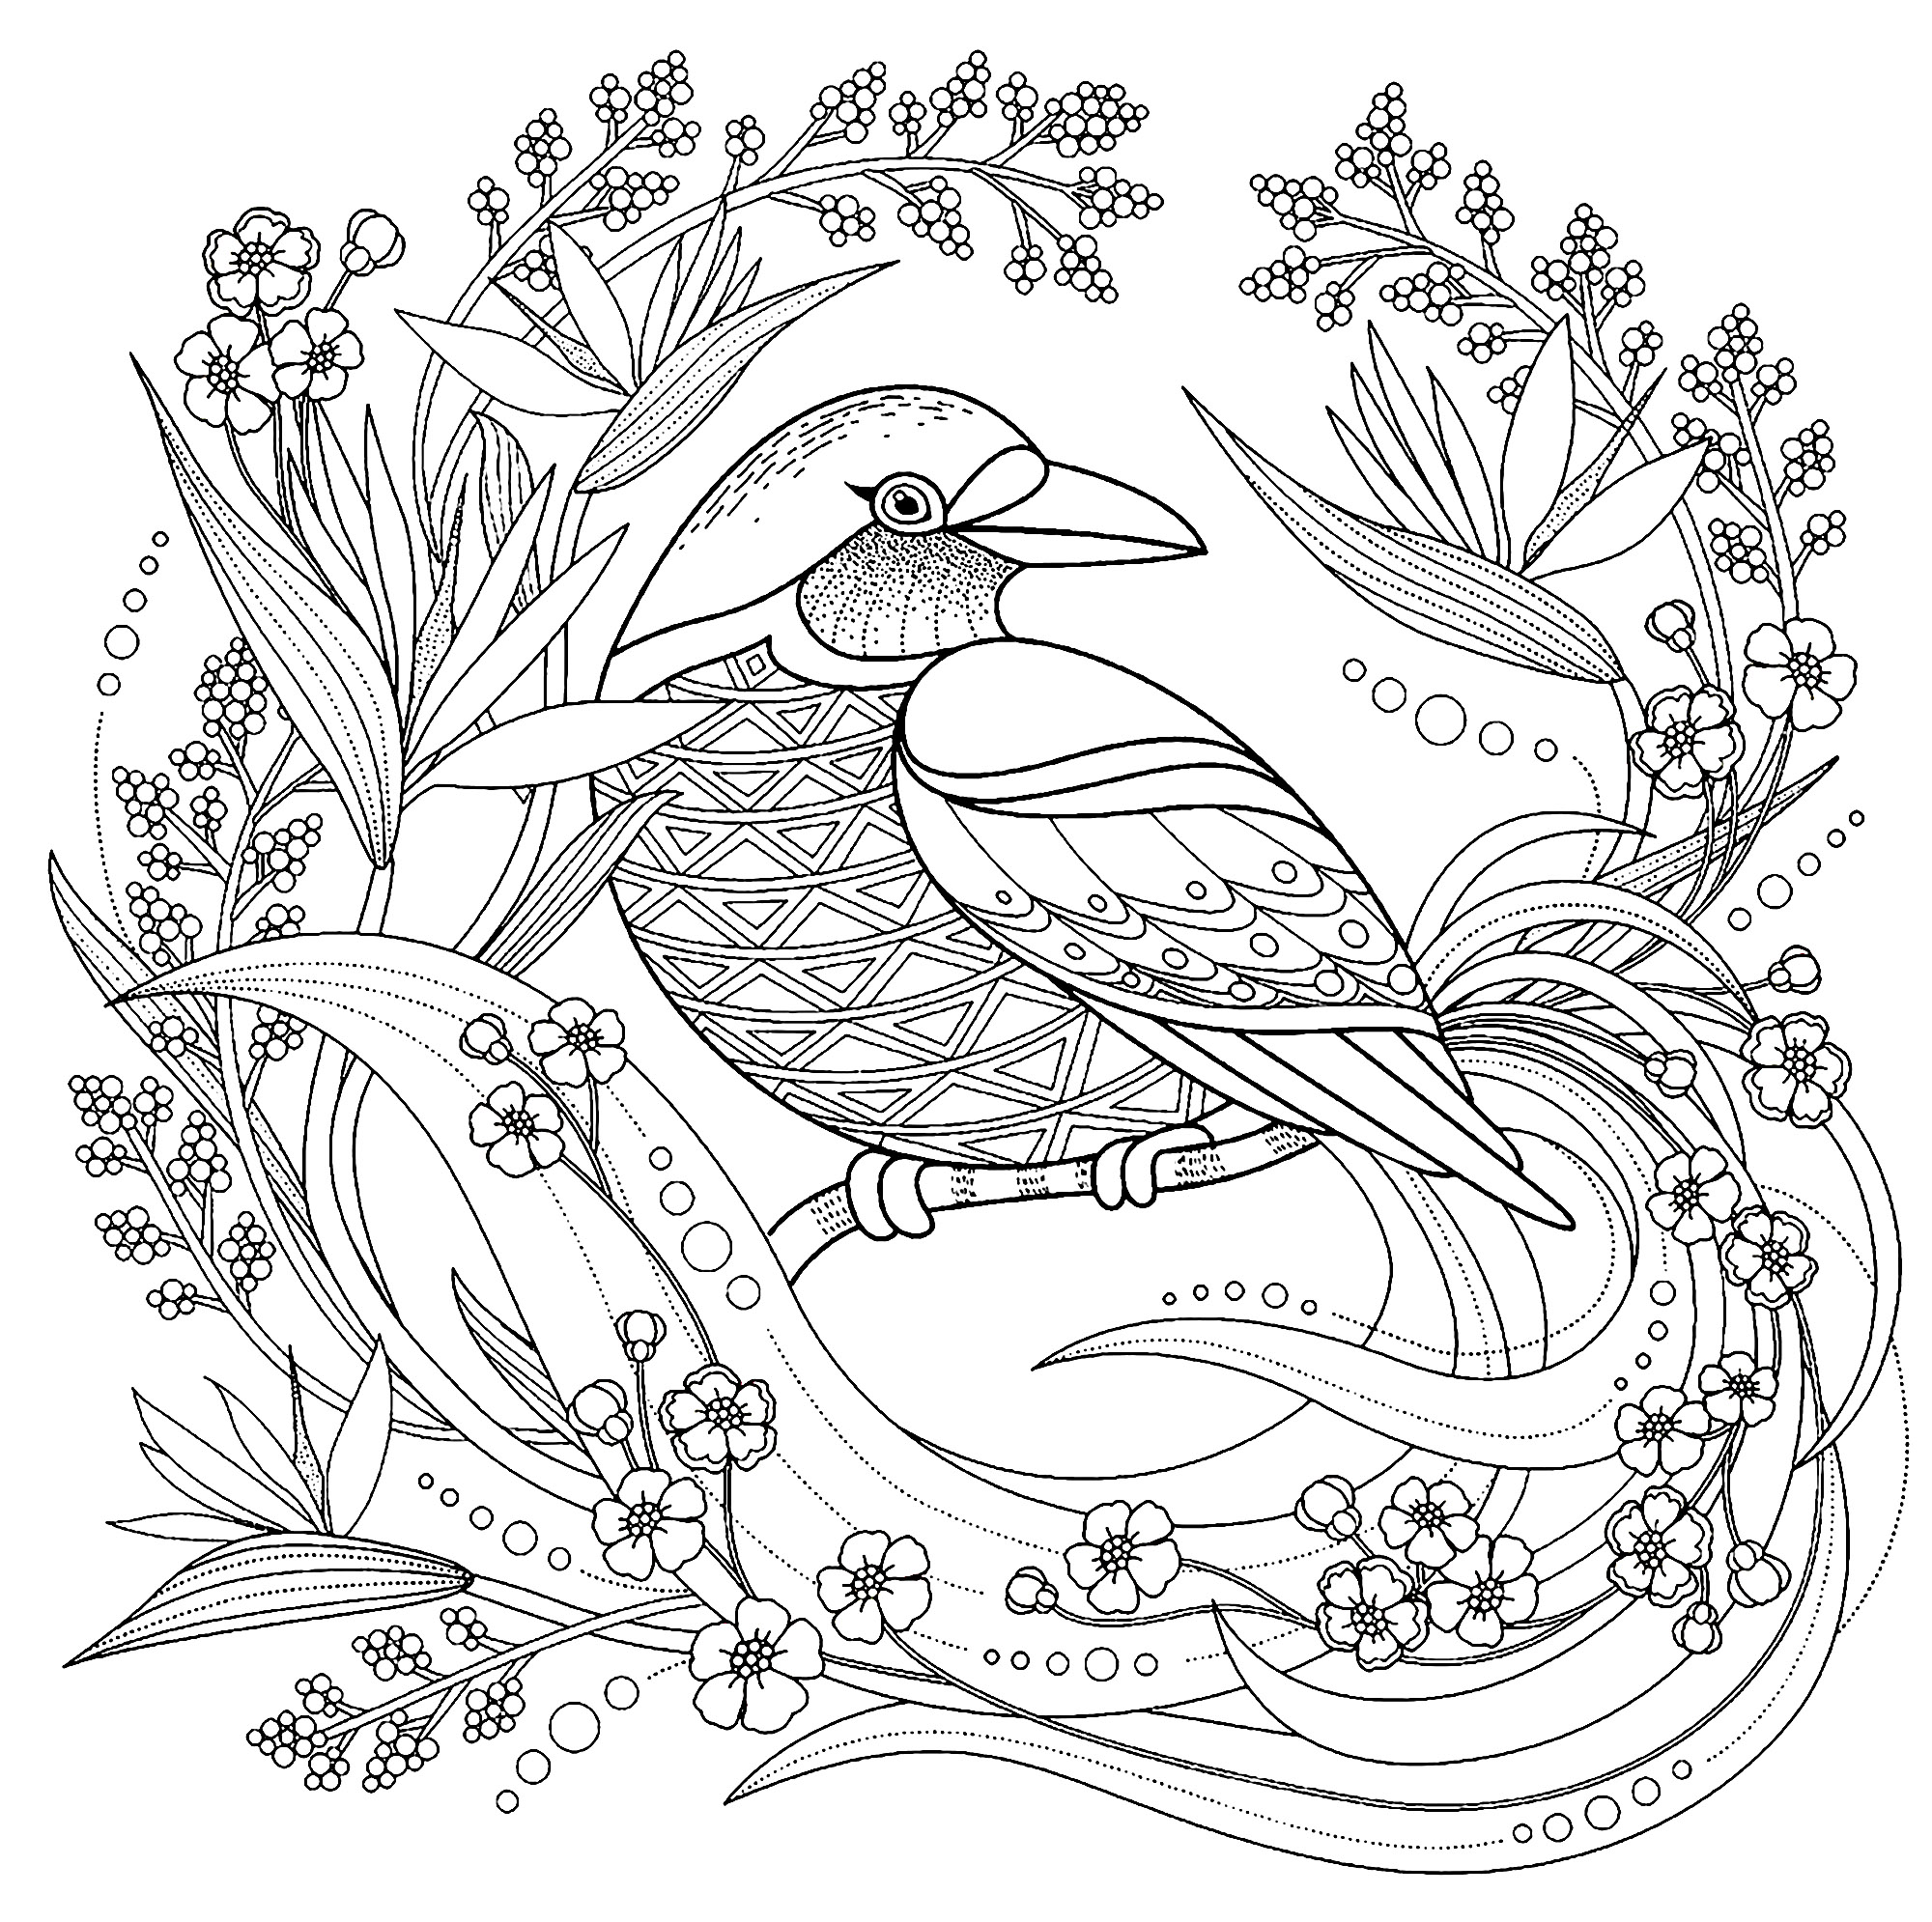 bird coloring pages for adults birds free to color for children birds kids coloring pages bird coloring pages for adults